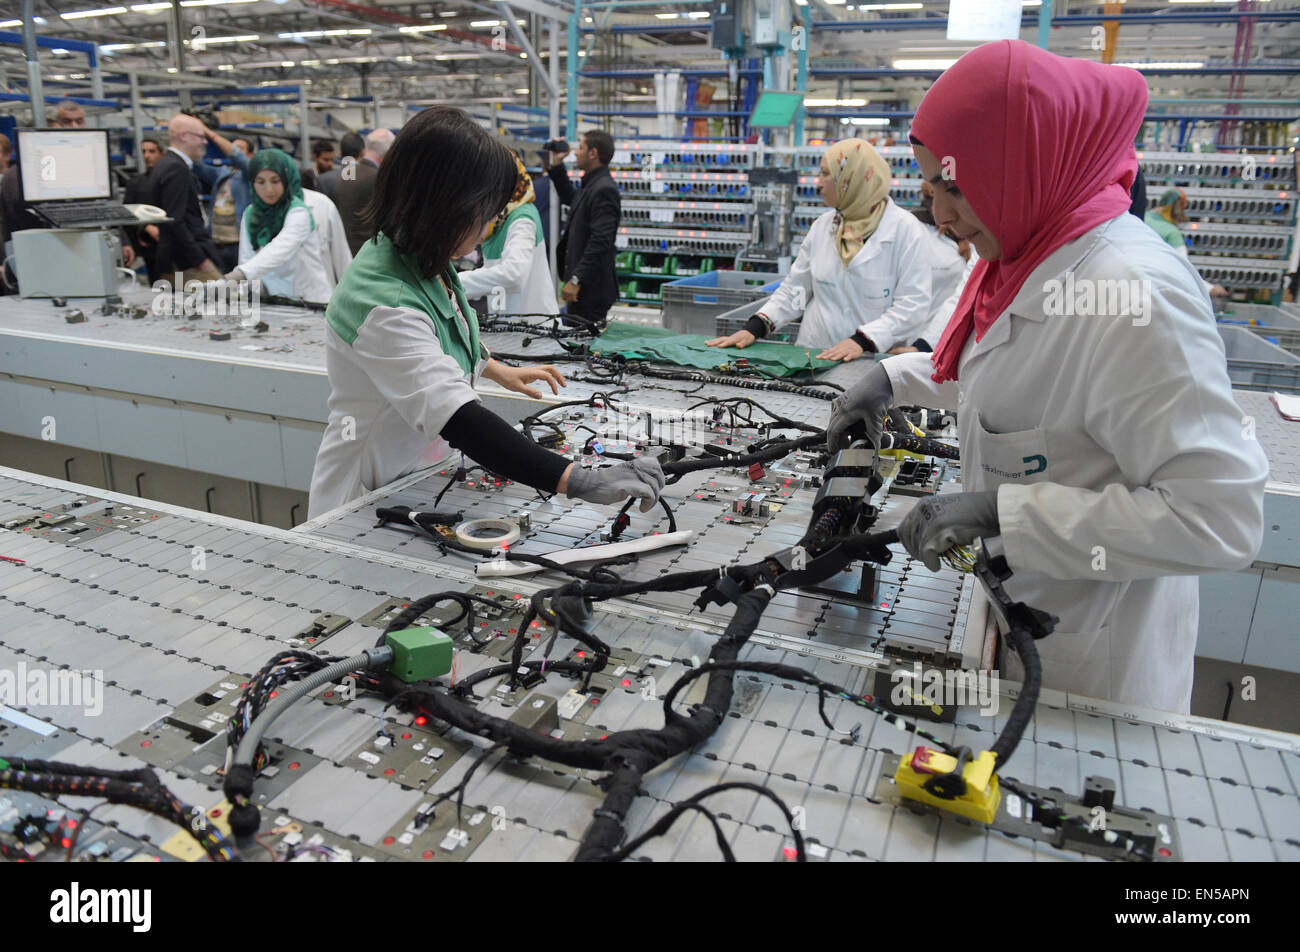 Wiring Harness Stock Photos Images Alamy Machines India Tunisian Employees Work On A